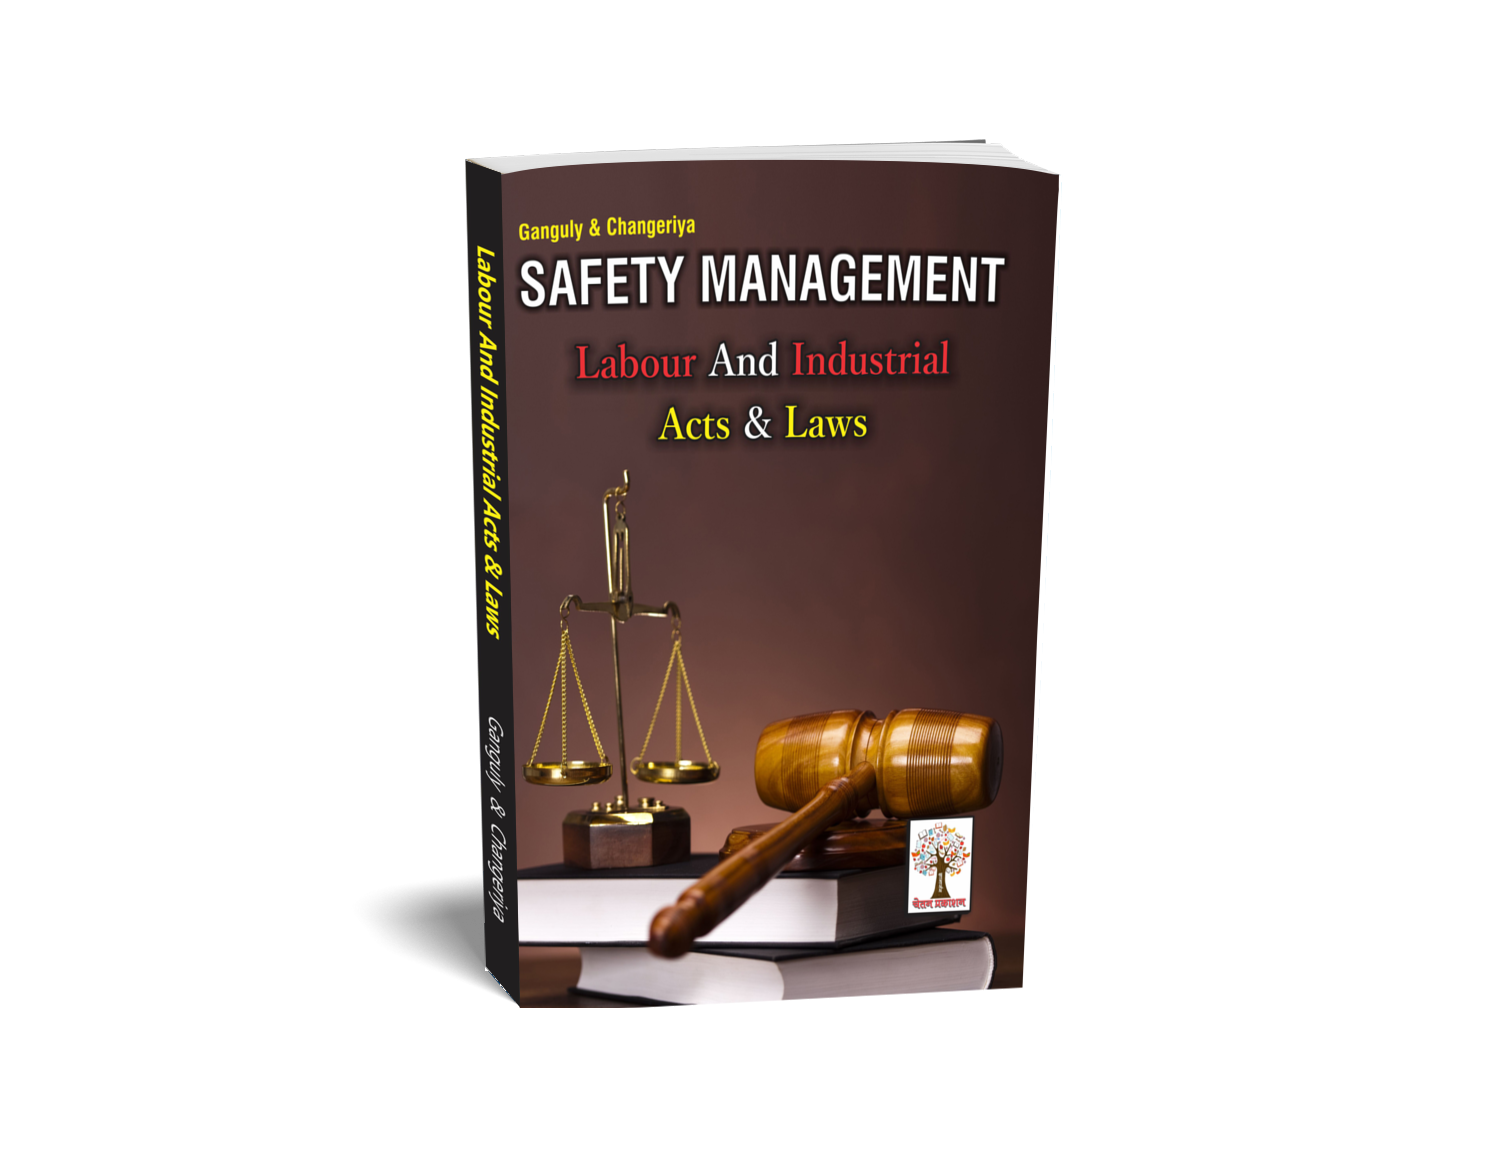 Labour & Industrial Acts & Laws (Safety Management)